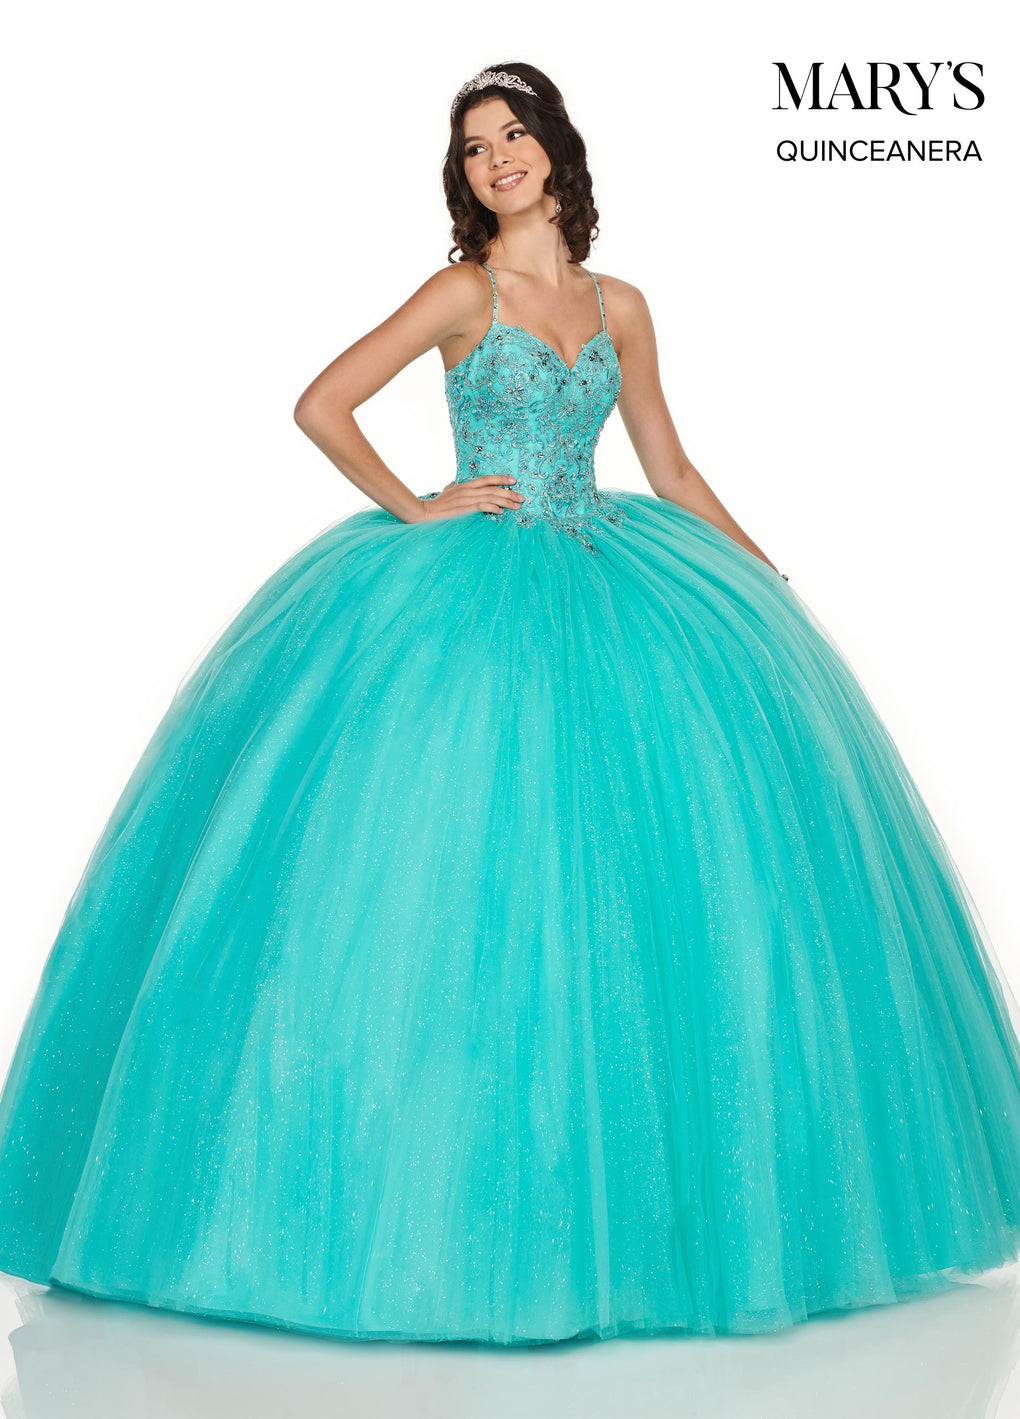 Marys Quinceanera Dresses in Light Jade or Rum Pink Color